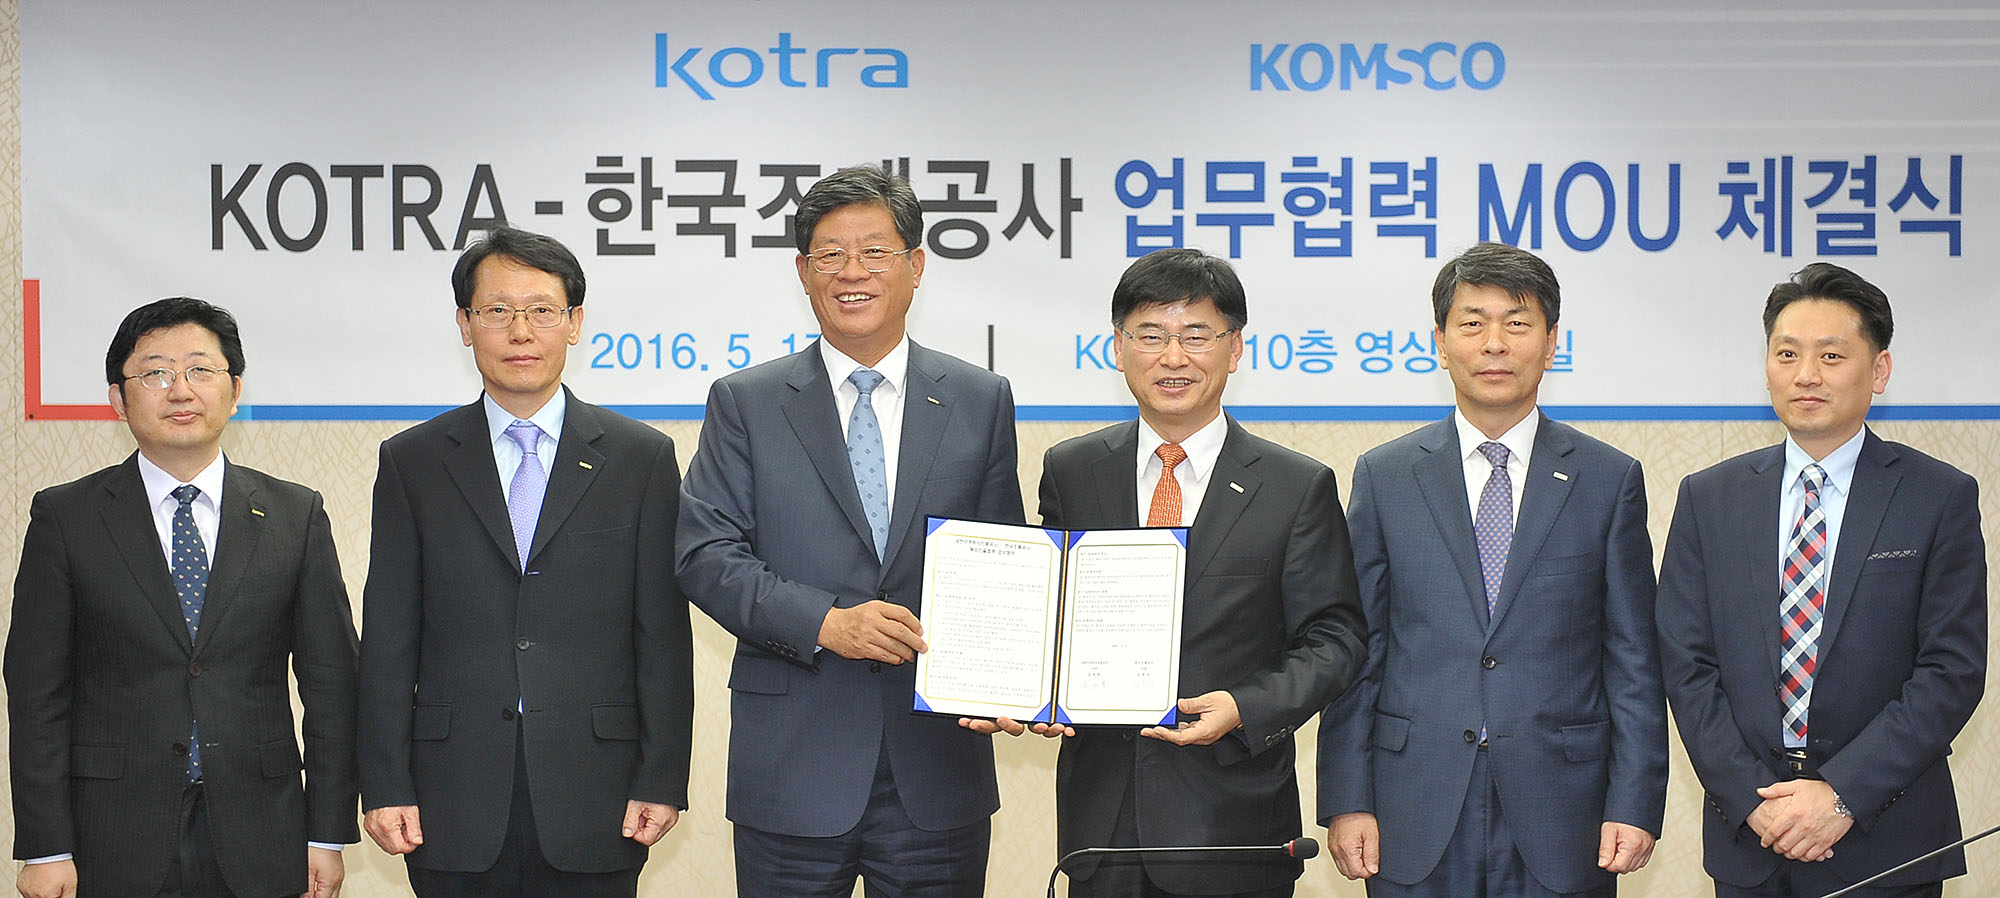 CEO of Korea Minting, Security Printing & ID Card Operating Corp, Kim hwa-dong (center) and CEO of Korea Trade Promotion Corporation, Kim Jae-hong (left)